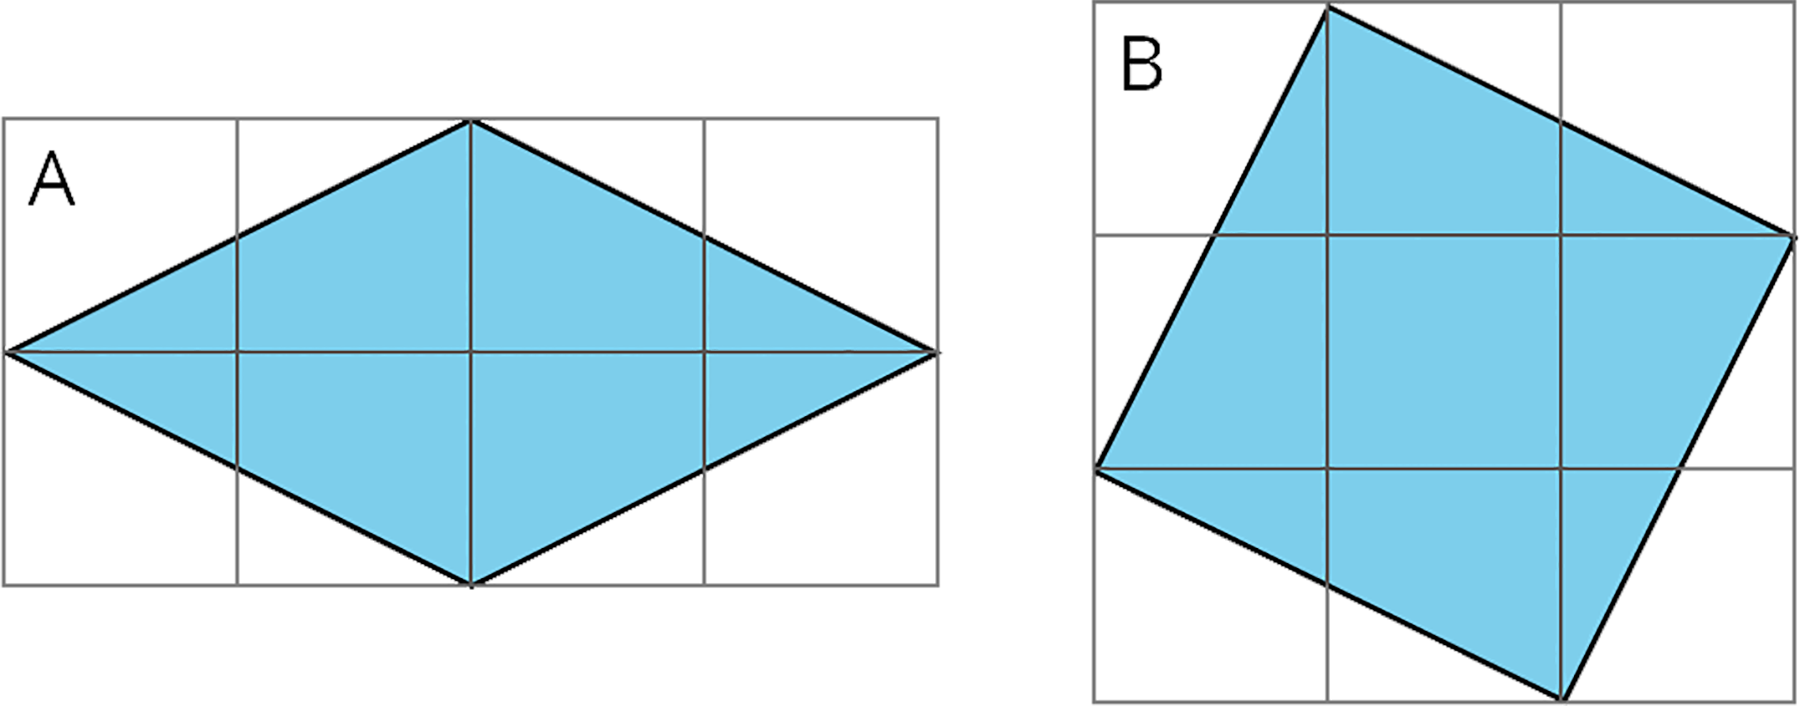 """Two quadrilaterals, labeled """"A"""" and """"B,"""" on square grids. Both quadrilaterals are not aligned to the horizontal or vertical gridlines.  Quadrilateral """"A"""" is on a grid that has 2 rows of 4 squares. The quadrilateral is drawn starting at the left most vertex. The second vertex is 2 squares to the right and 1 square up from the first vertex. The third vertex is 2 squares to the right and 1 square down from the second vertex. The fourth vertex is 2 squares to the left and 1 square down from the third vertex. The first vertex is 2 squares to the left and 1 square up from the fourth vertex.   Quadrilateral """"B"""" is on a grid that has 3 rows of 3 squares. The quadrilateral is drawn starting at the left most vertex. The second vertex is 1 square to the right and 2 squares up from the first vertex. The third vertex is 2 squares to the right and 1 square down from the second vertex. The fourth vertex is 1 square to the left and 2 squares down from the third vertex. The first vertex is 2 squares to the left and 1 square up from the fourth vertex."""